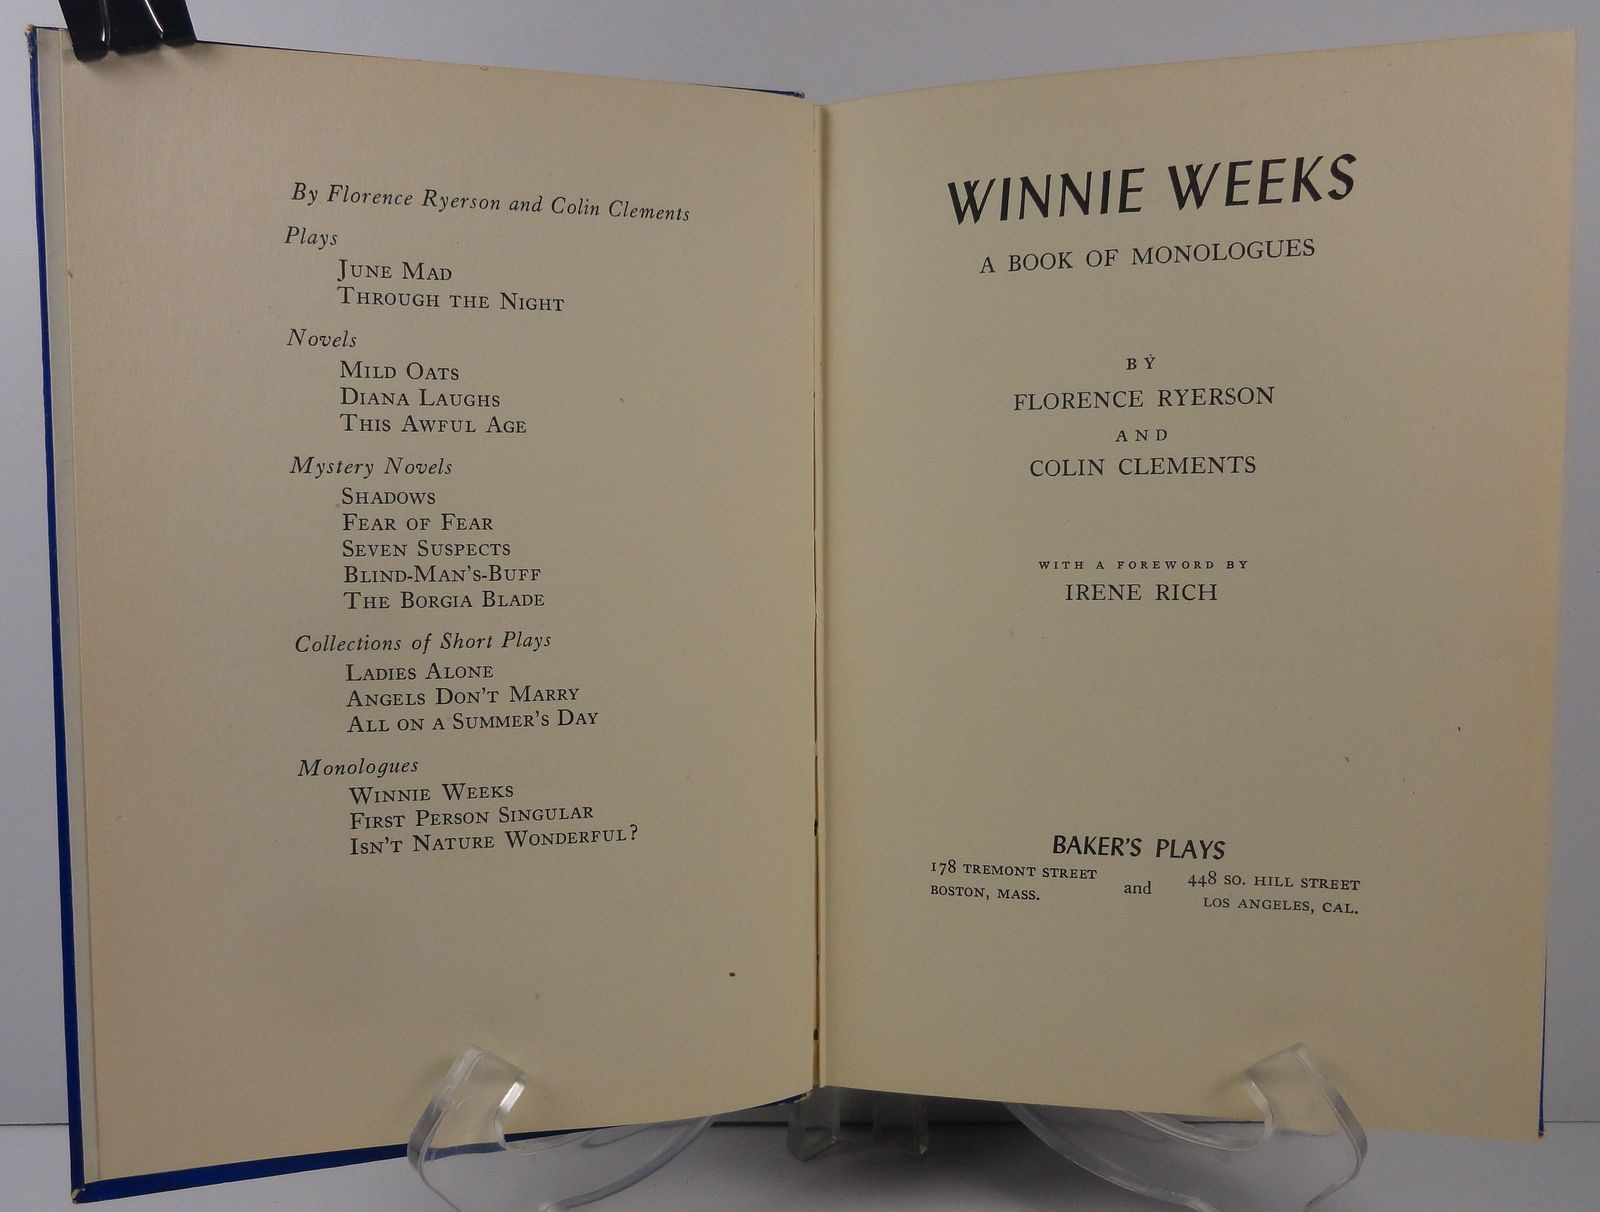 Winnie Weeks by Florence Ryerson and Colin Clements 1940